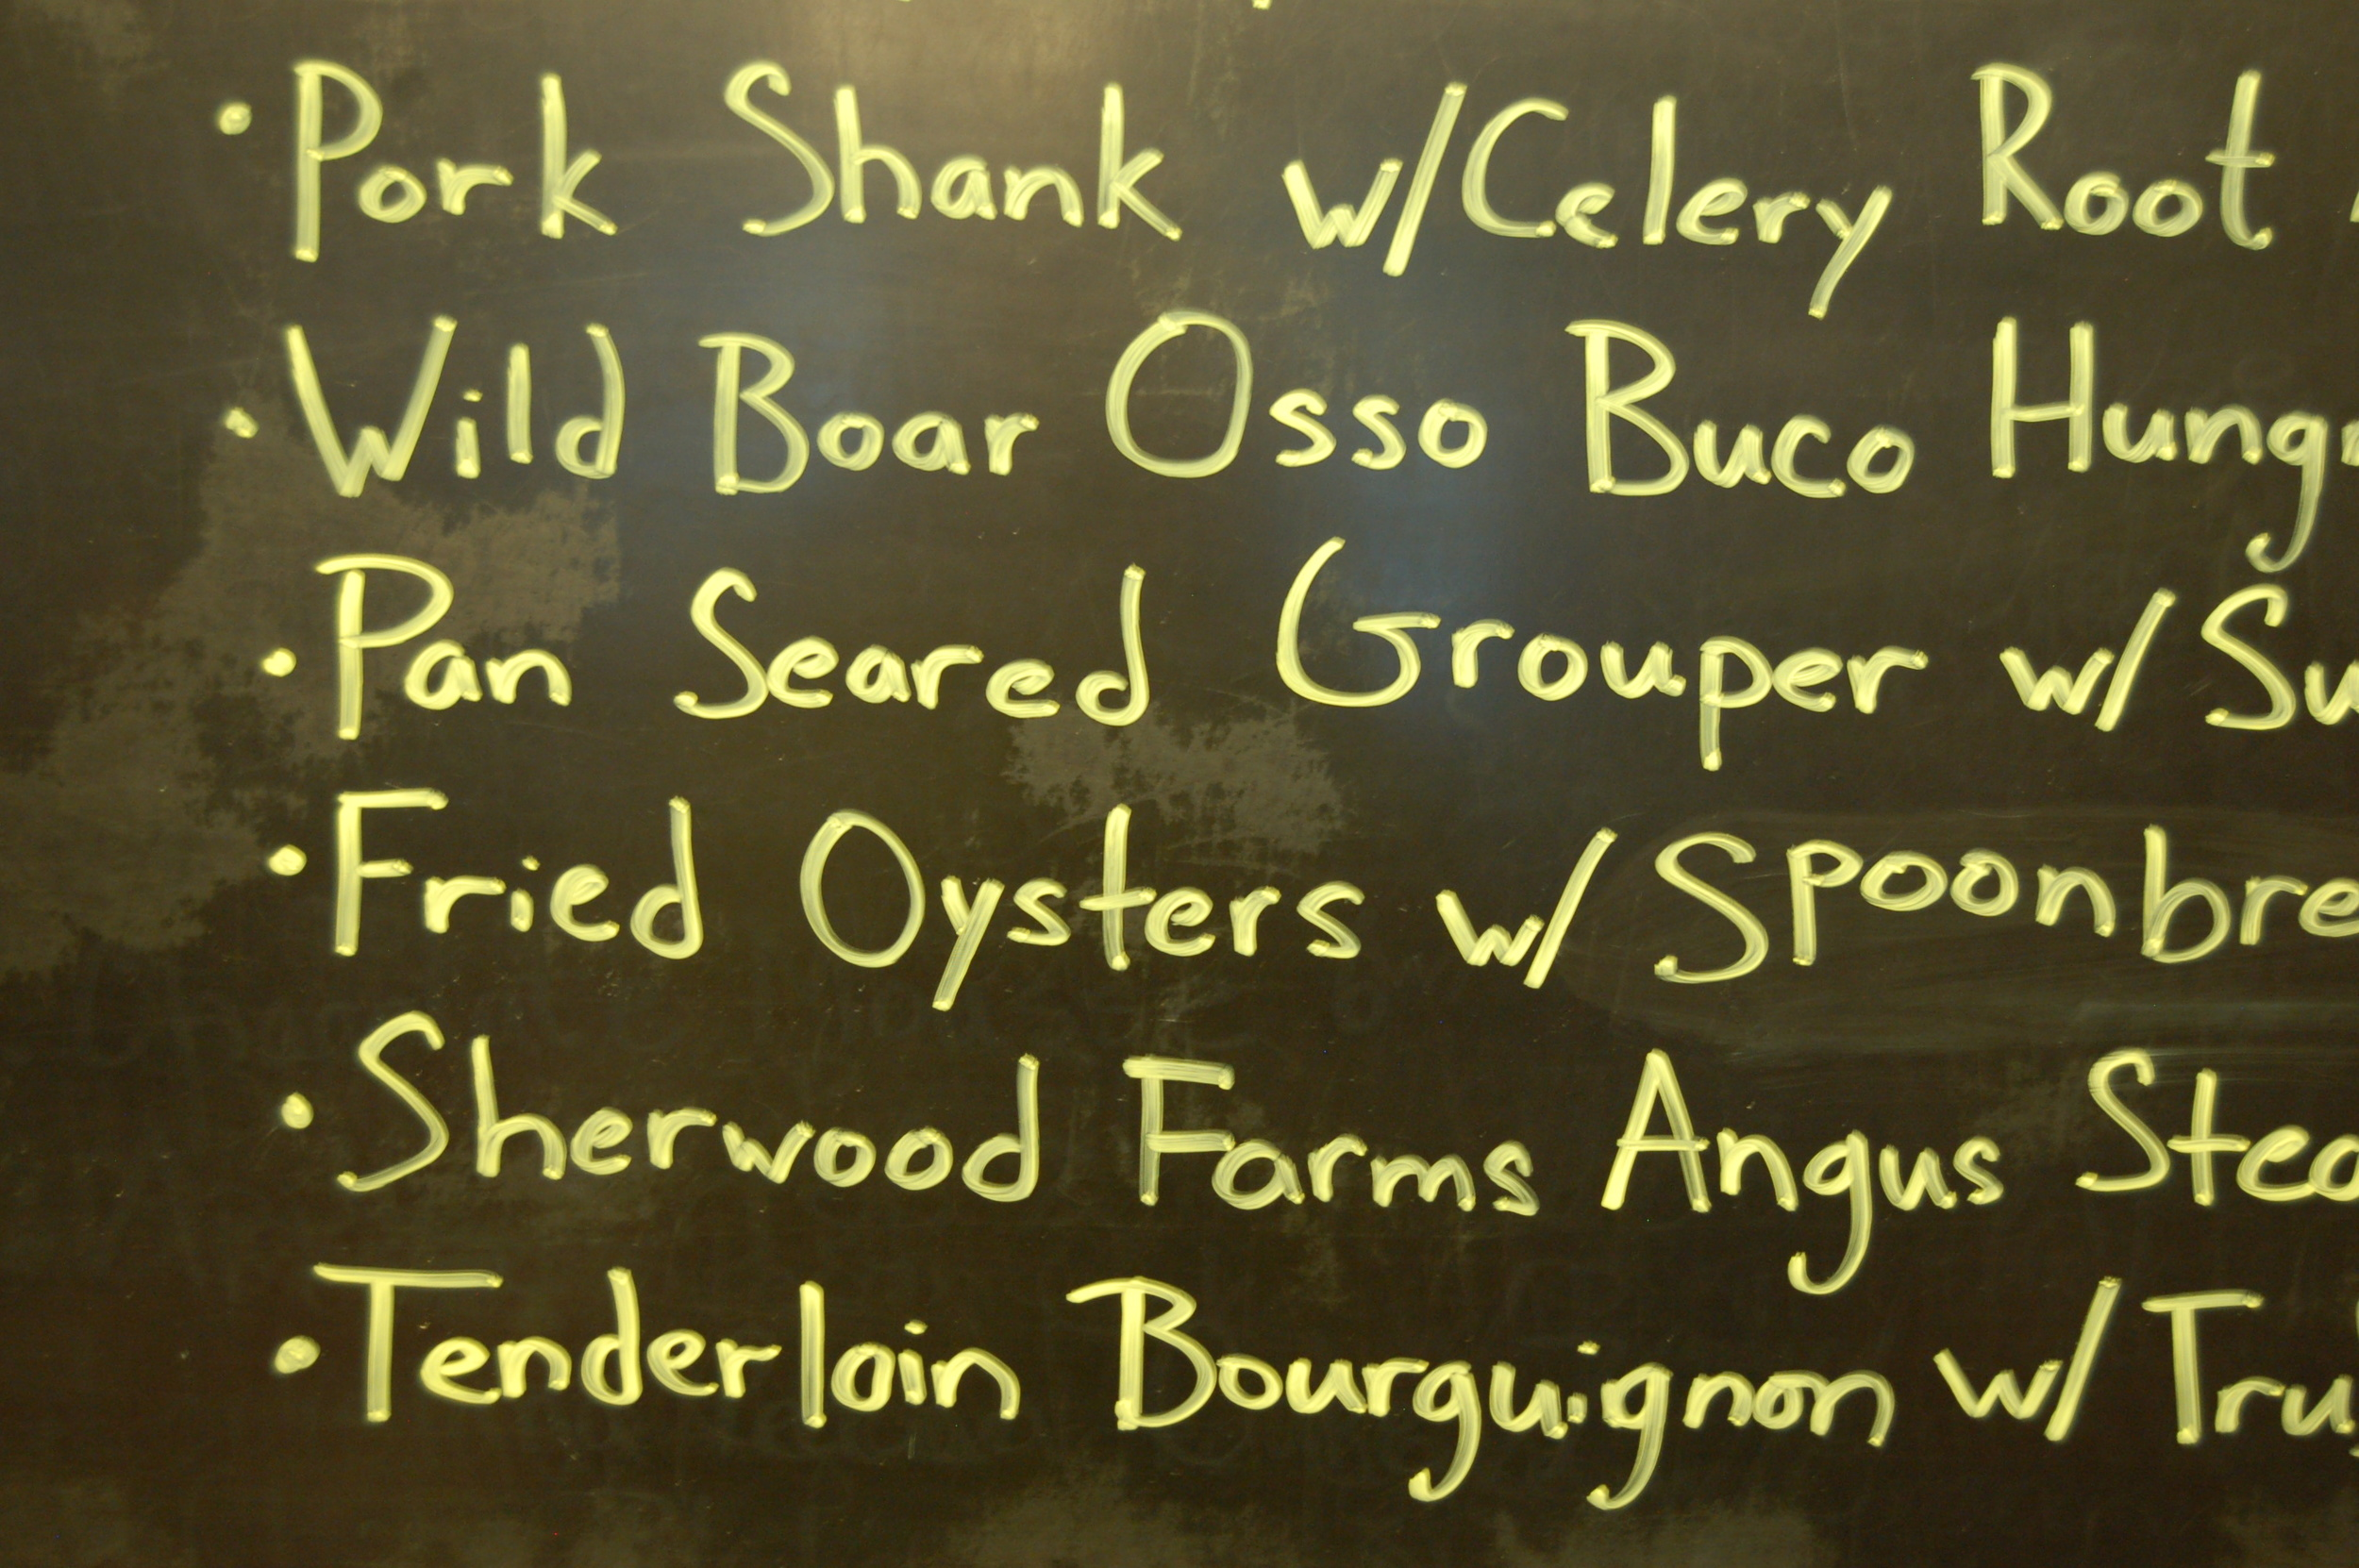 What you really want to know about the menu at Tastings of Charlottesville is on their blackboard.